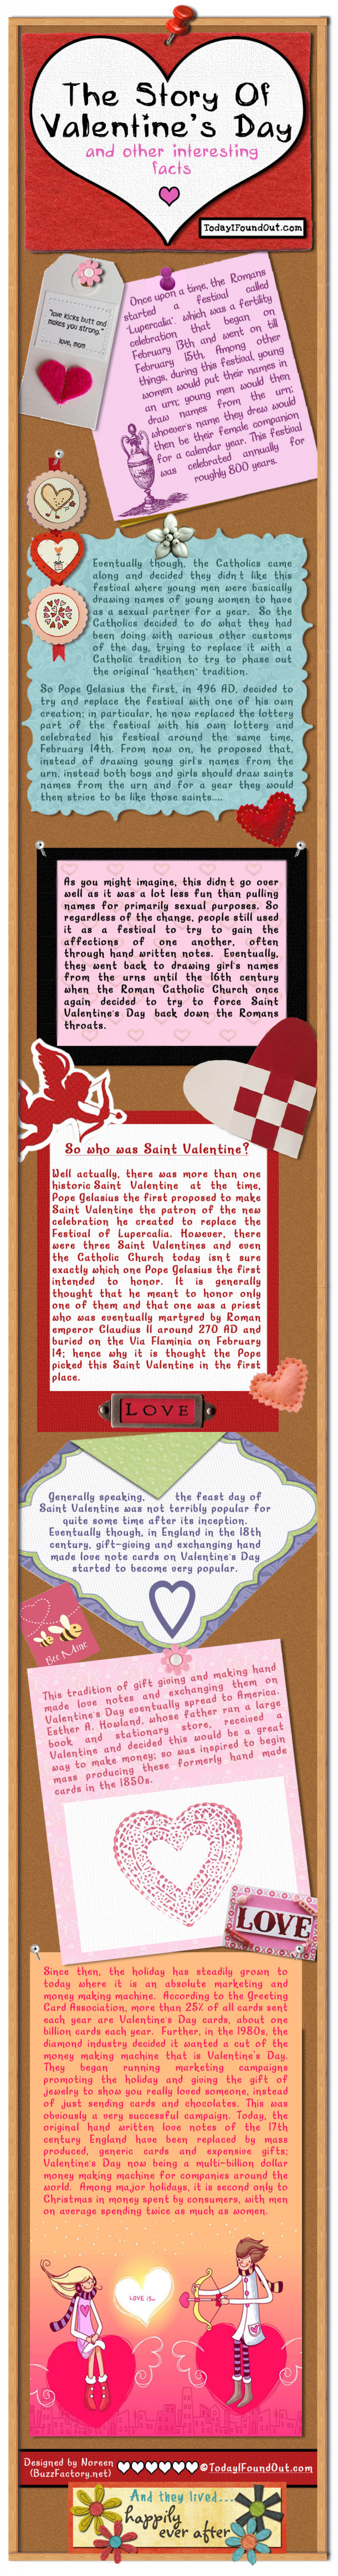 The Story of Valentine's Day  Infographic